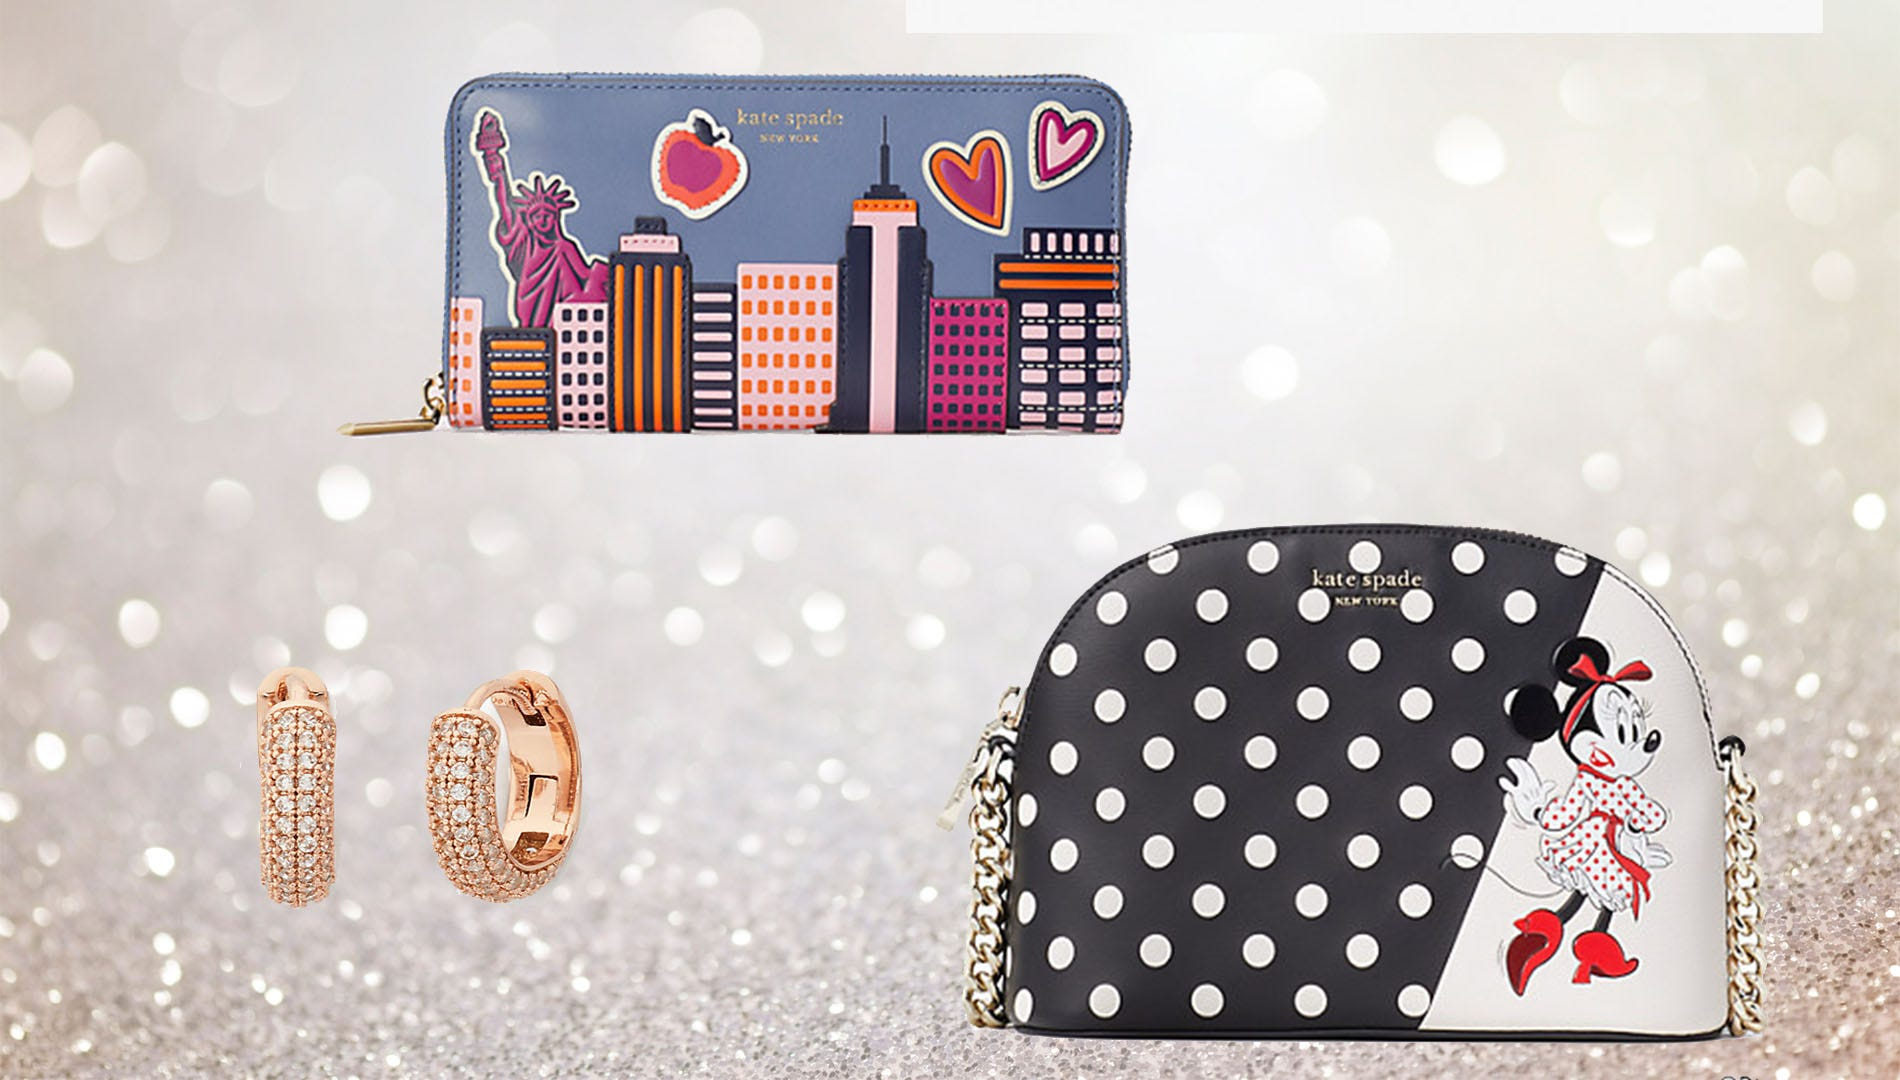 You can get a Kate Spade purse for a steal right now at the store s Rain or Shine Sale